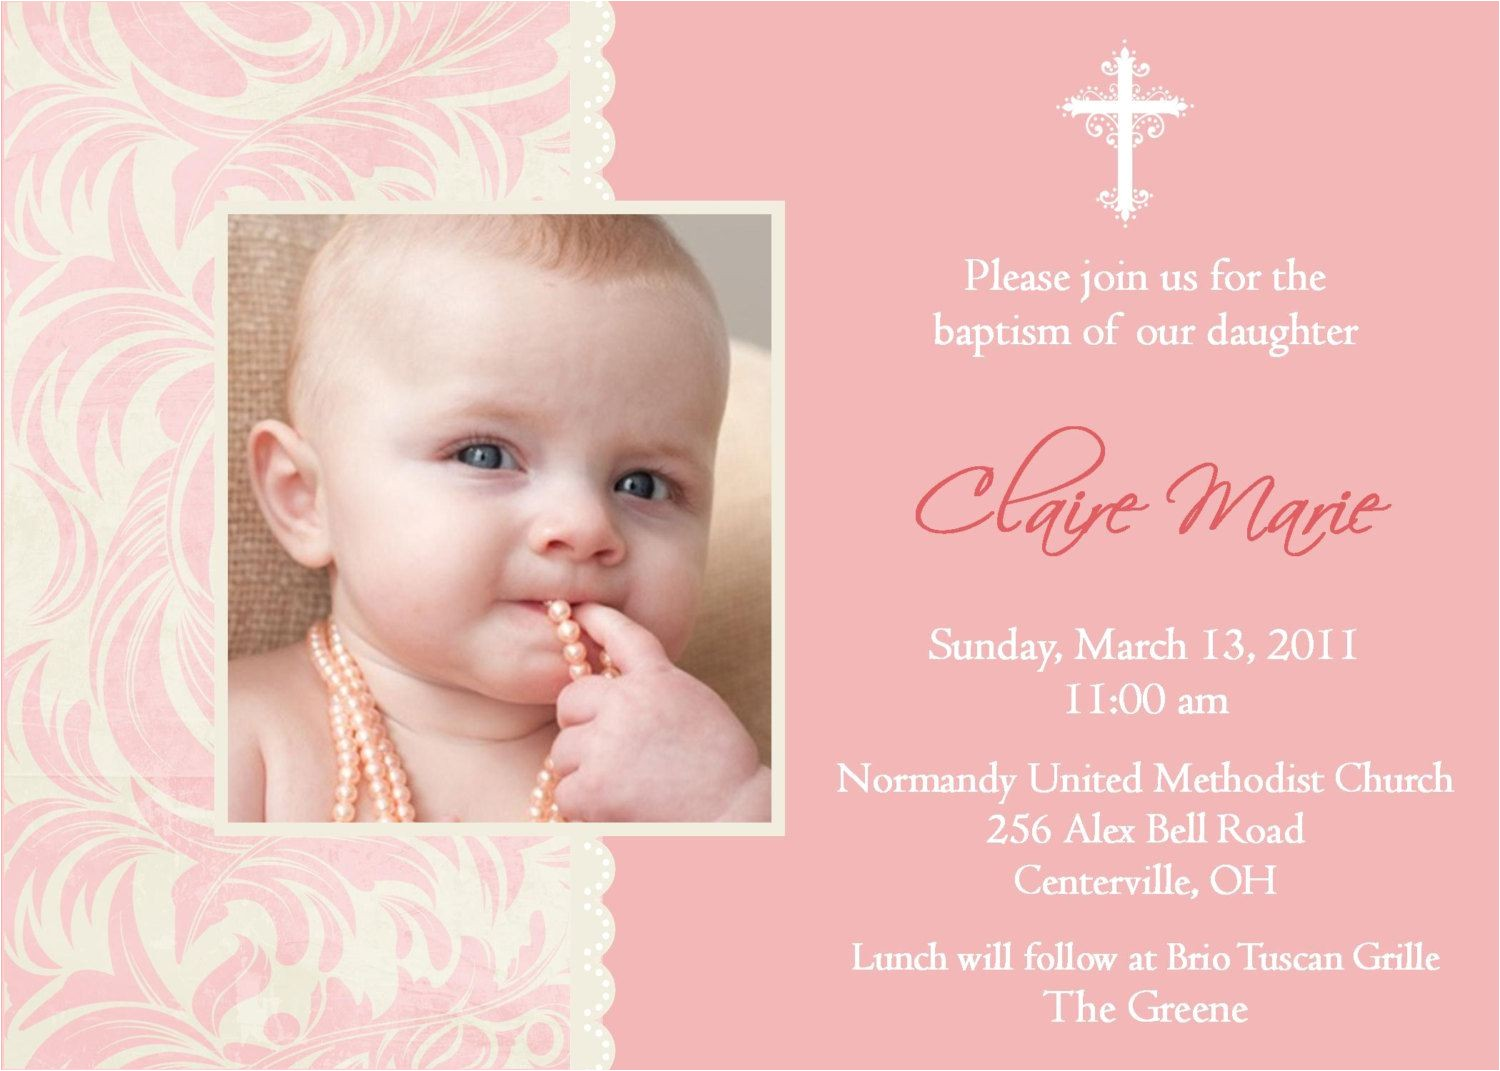 christening invitation background for baby girl